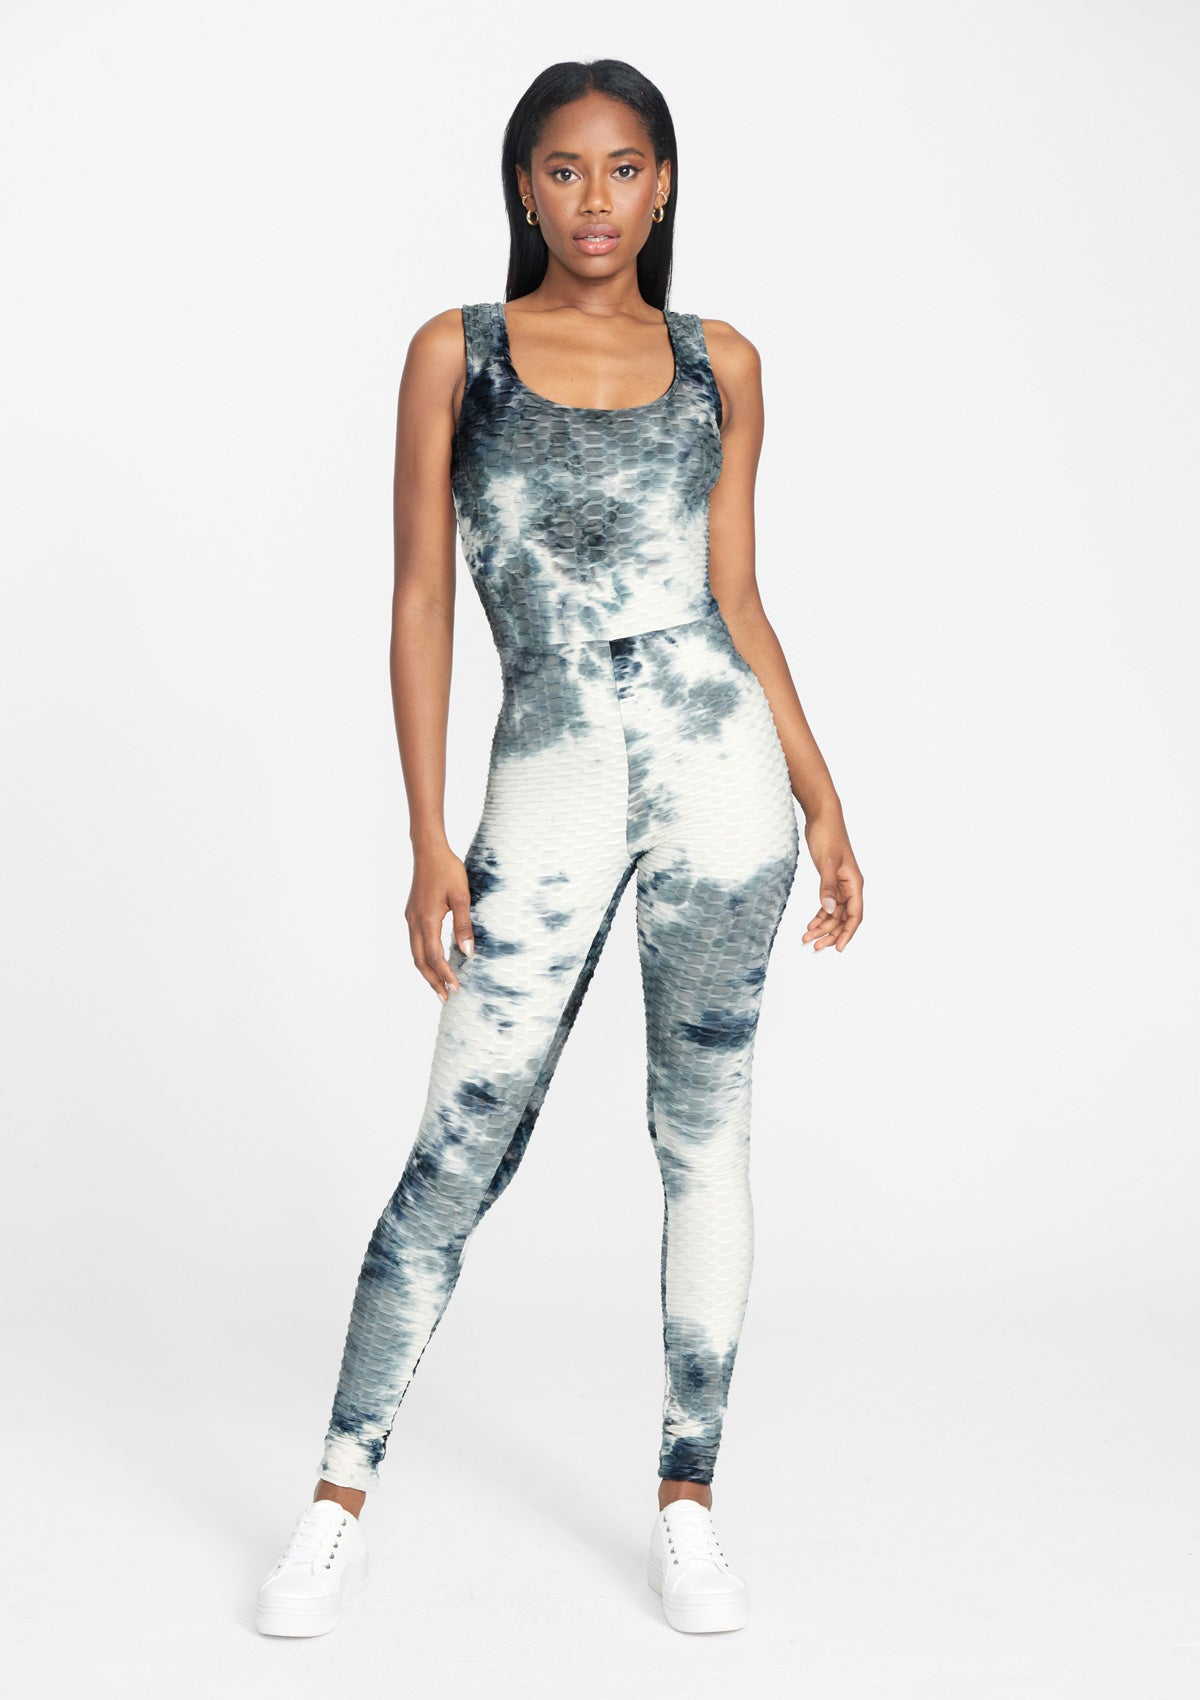 Alloy Apparel Tall Honeycomb Ruched Catsuit for Women in Charcoal Tie Dye Size 2XL   Polyester